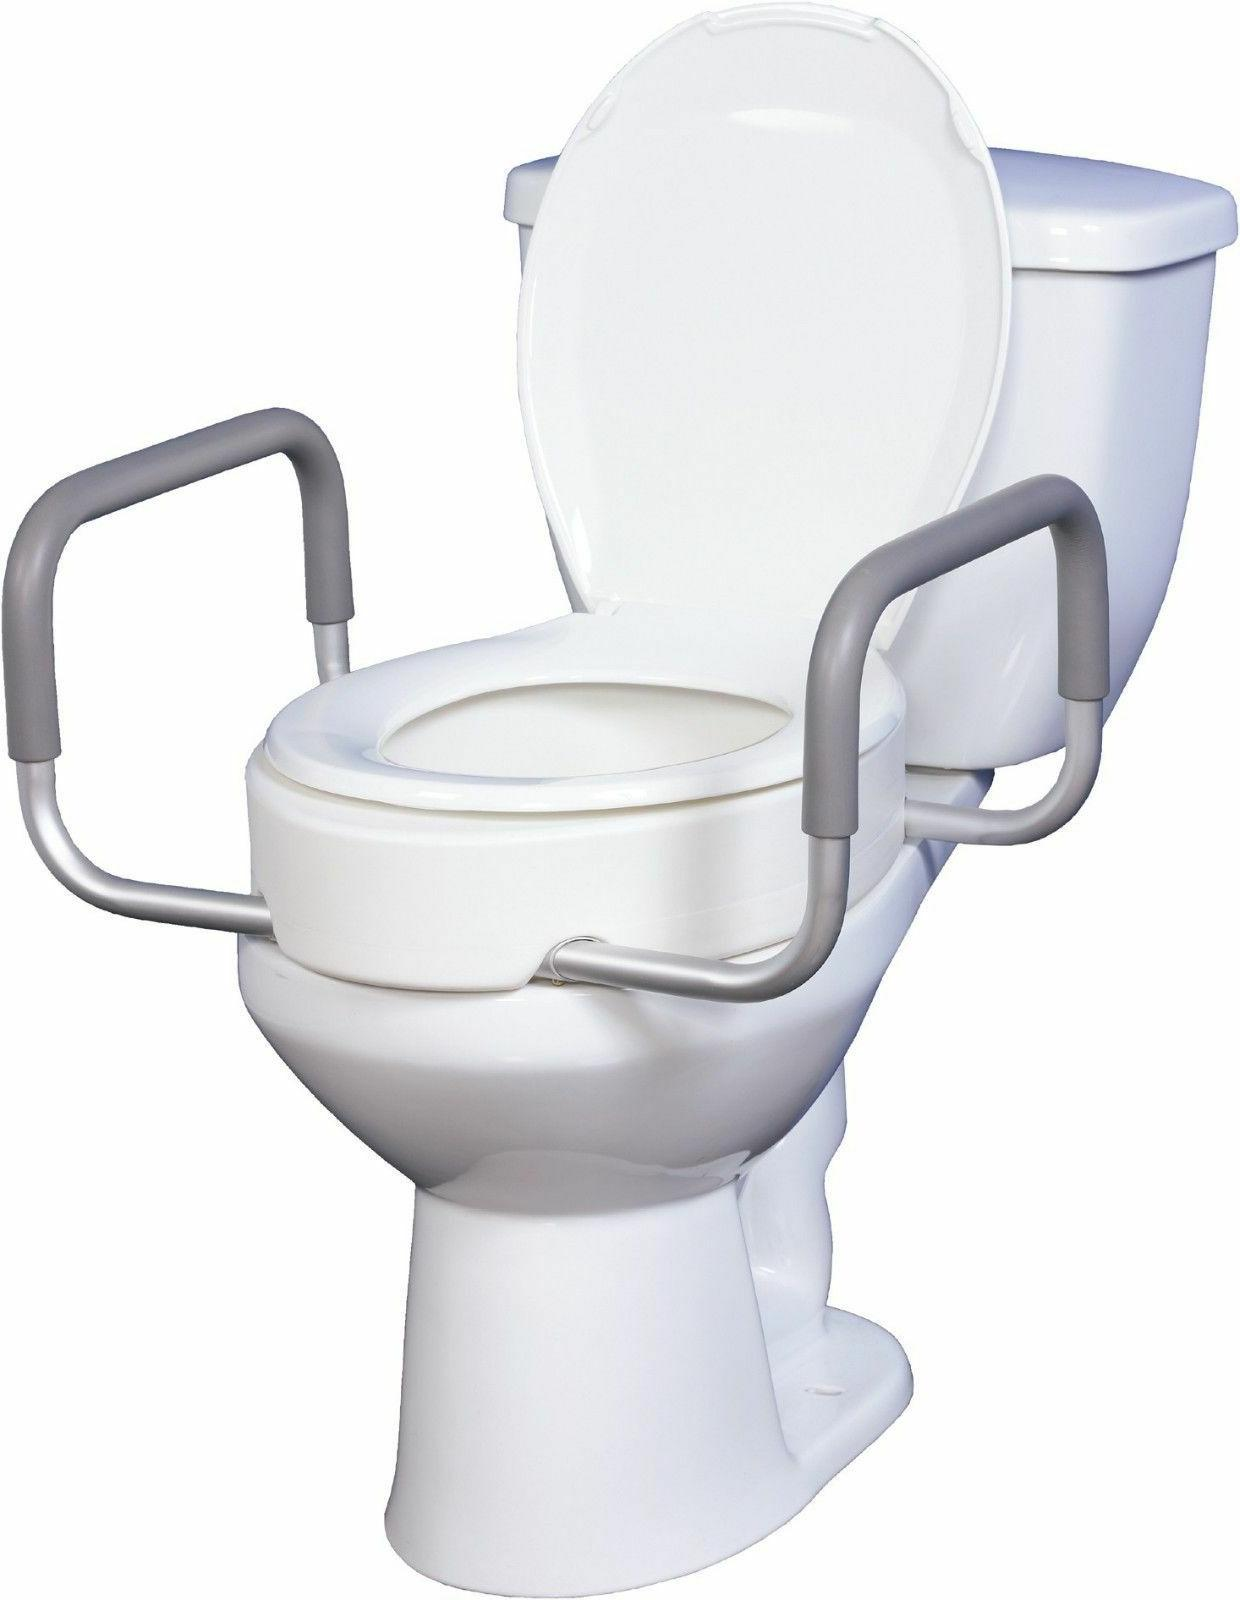 premium medical raised elevated toilet seat lift